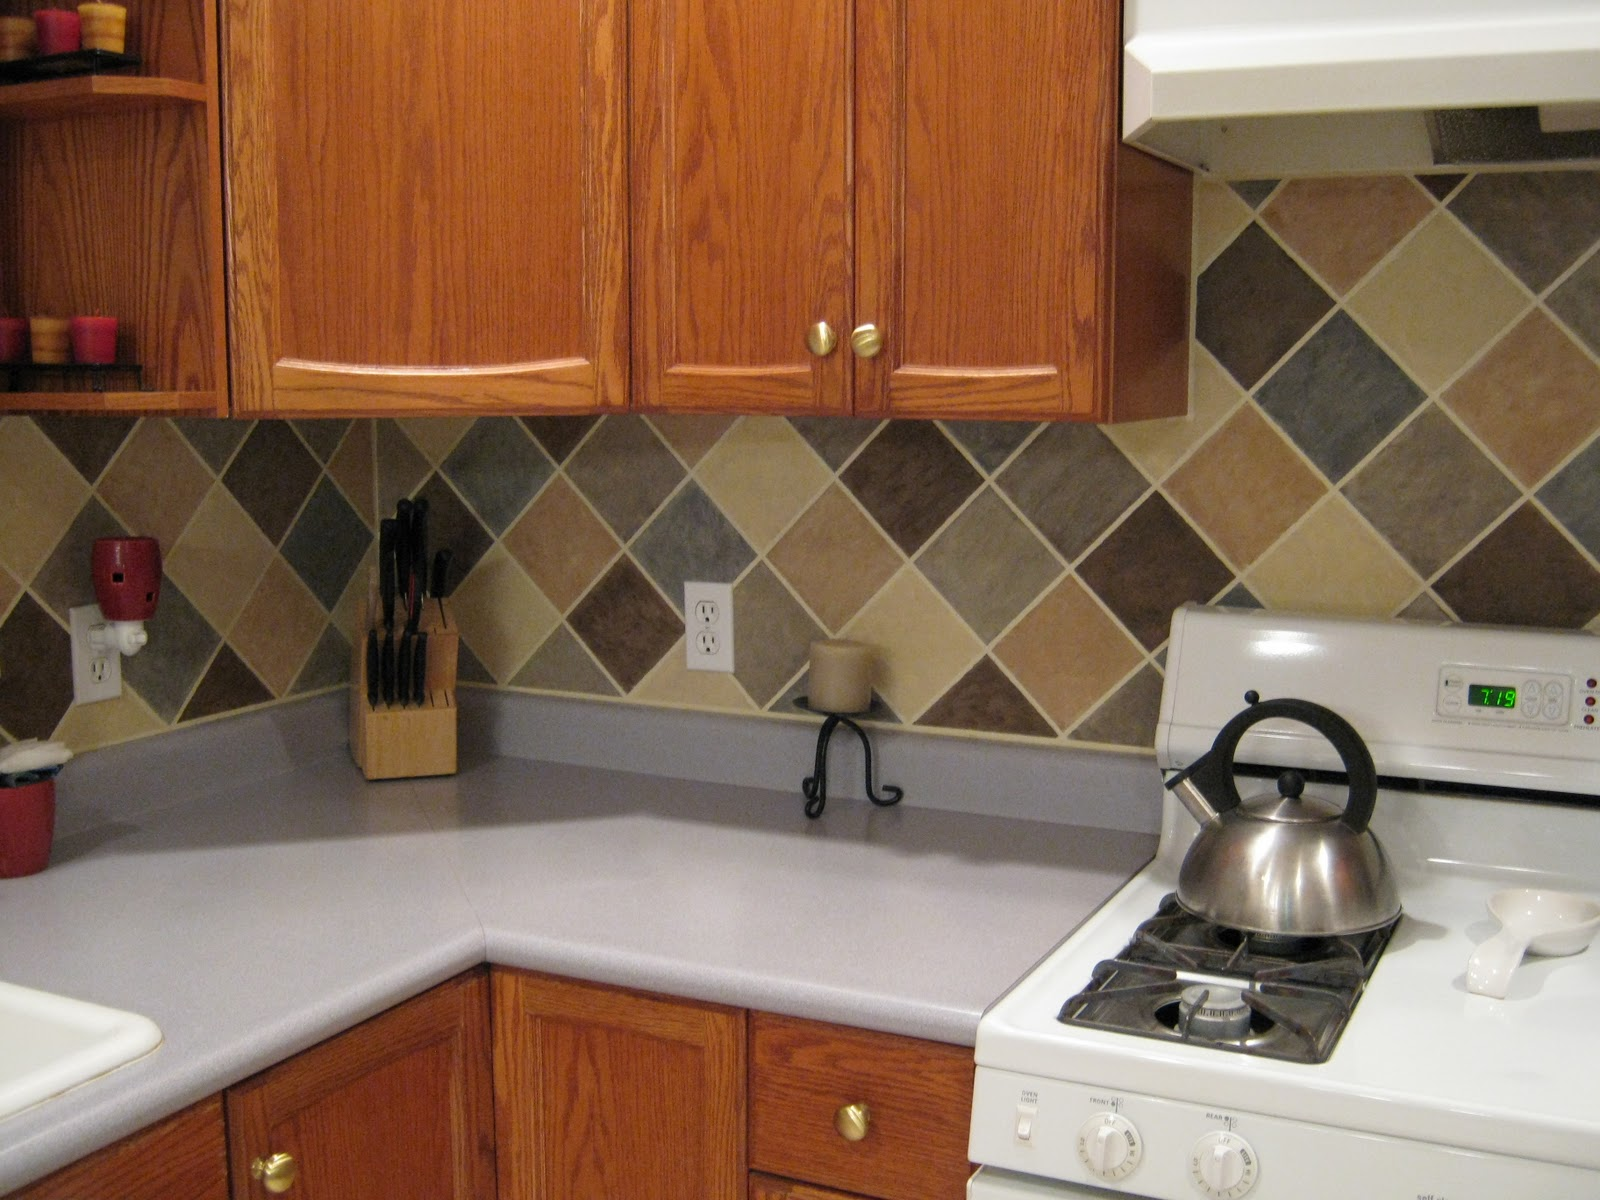 Inexpensive Backsplashes For Kitchens Rustic Kitchen Cart This Thrifty House Tile Looking Backsplash On A Budget